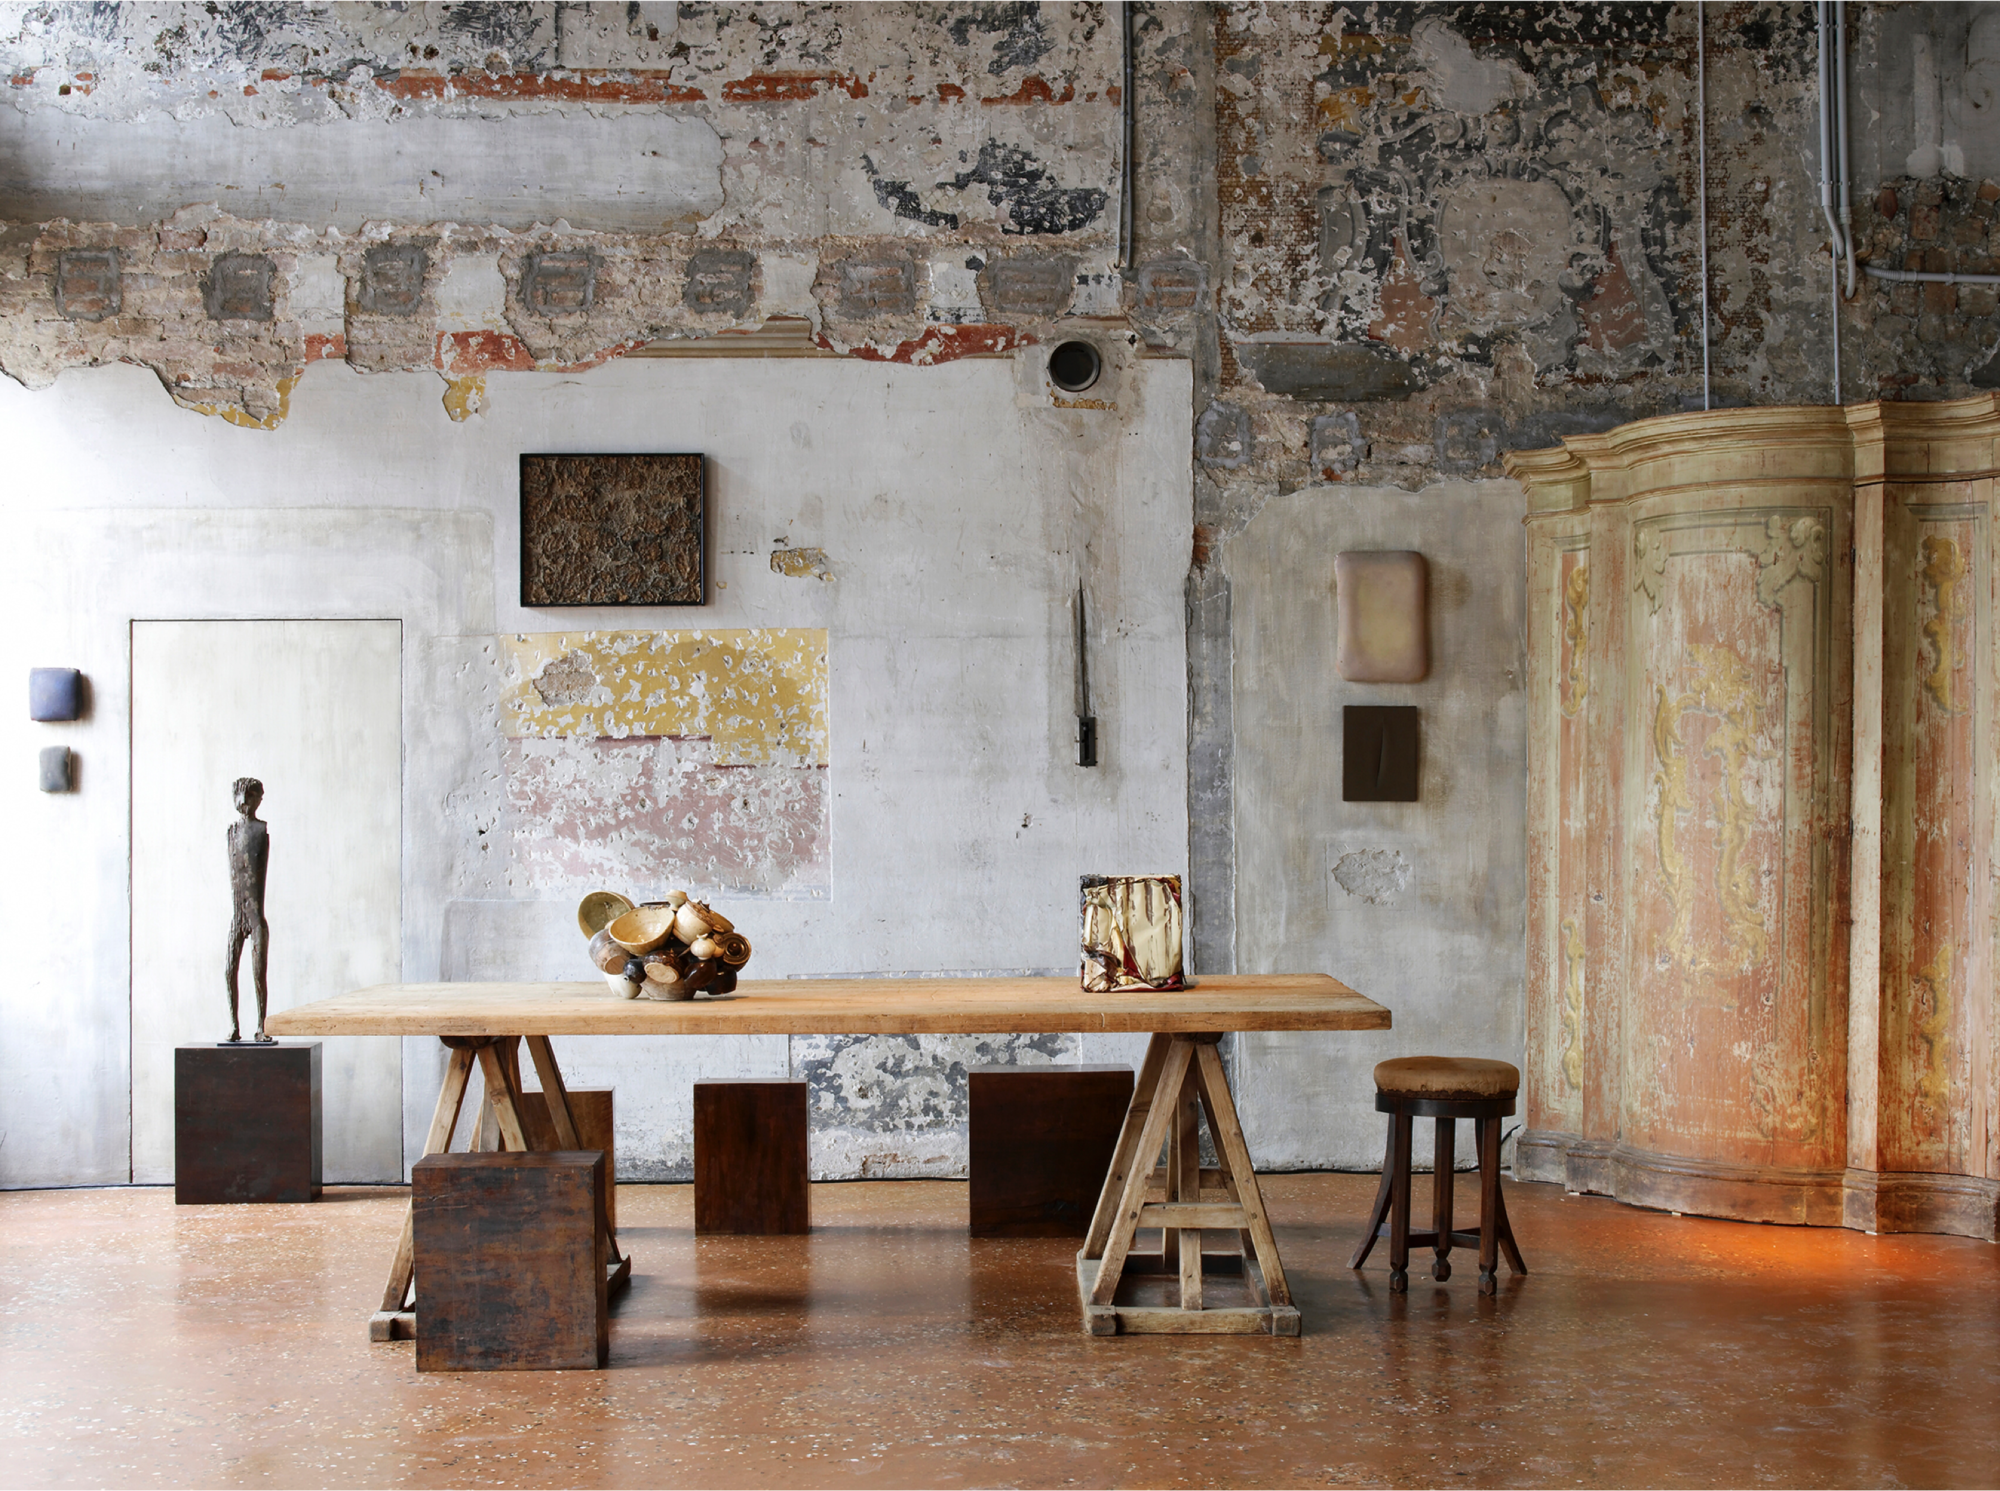 Installation view of Artempo: Where Time Becomes Art (2007) at Palazzo Fortuny